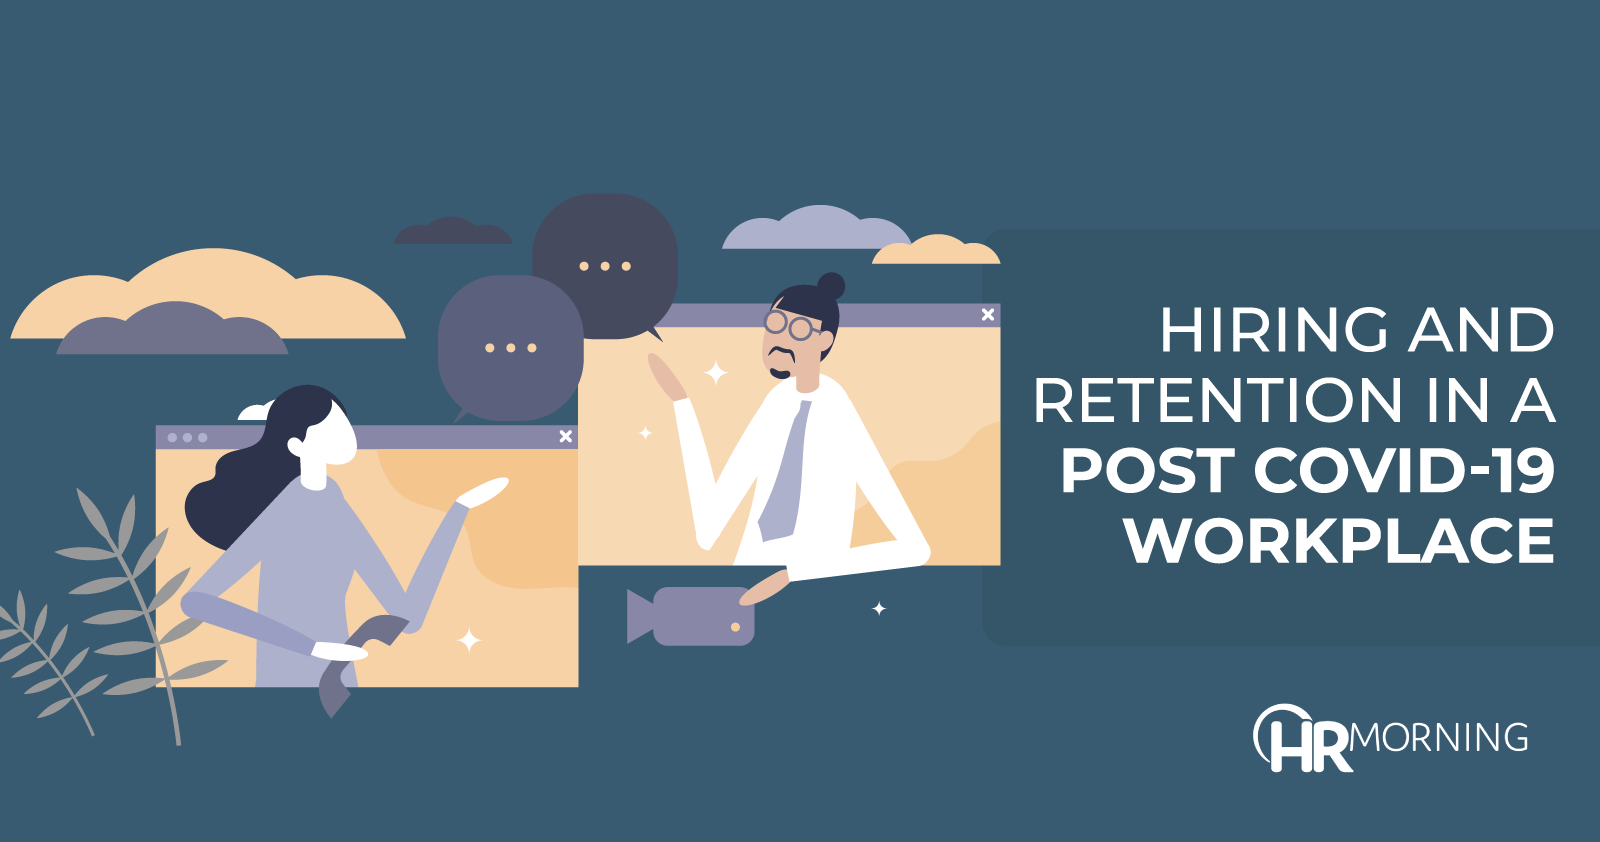 hiring and retention in a post covid-19 workplace